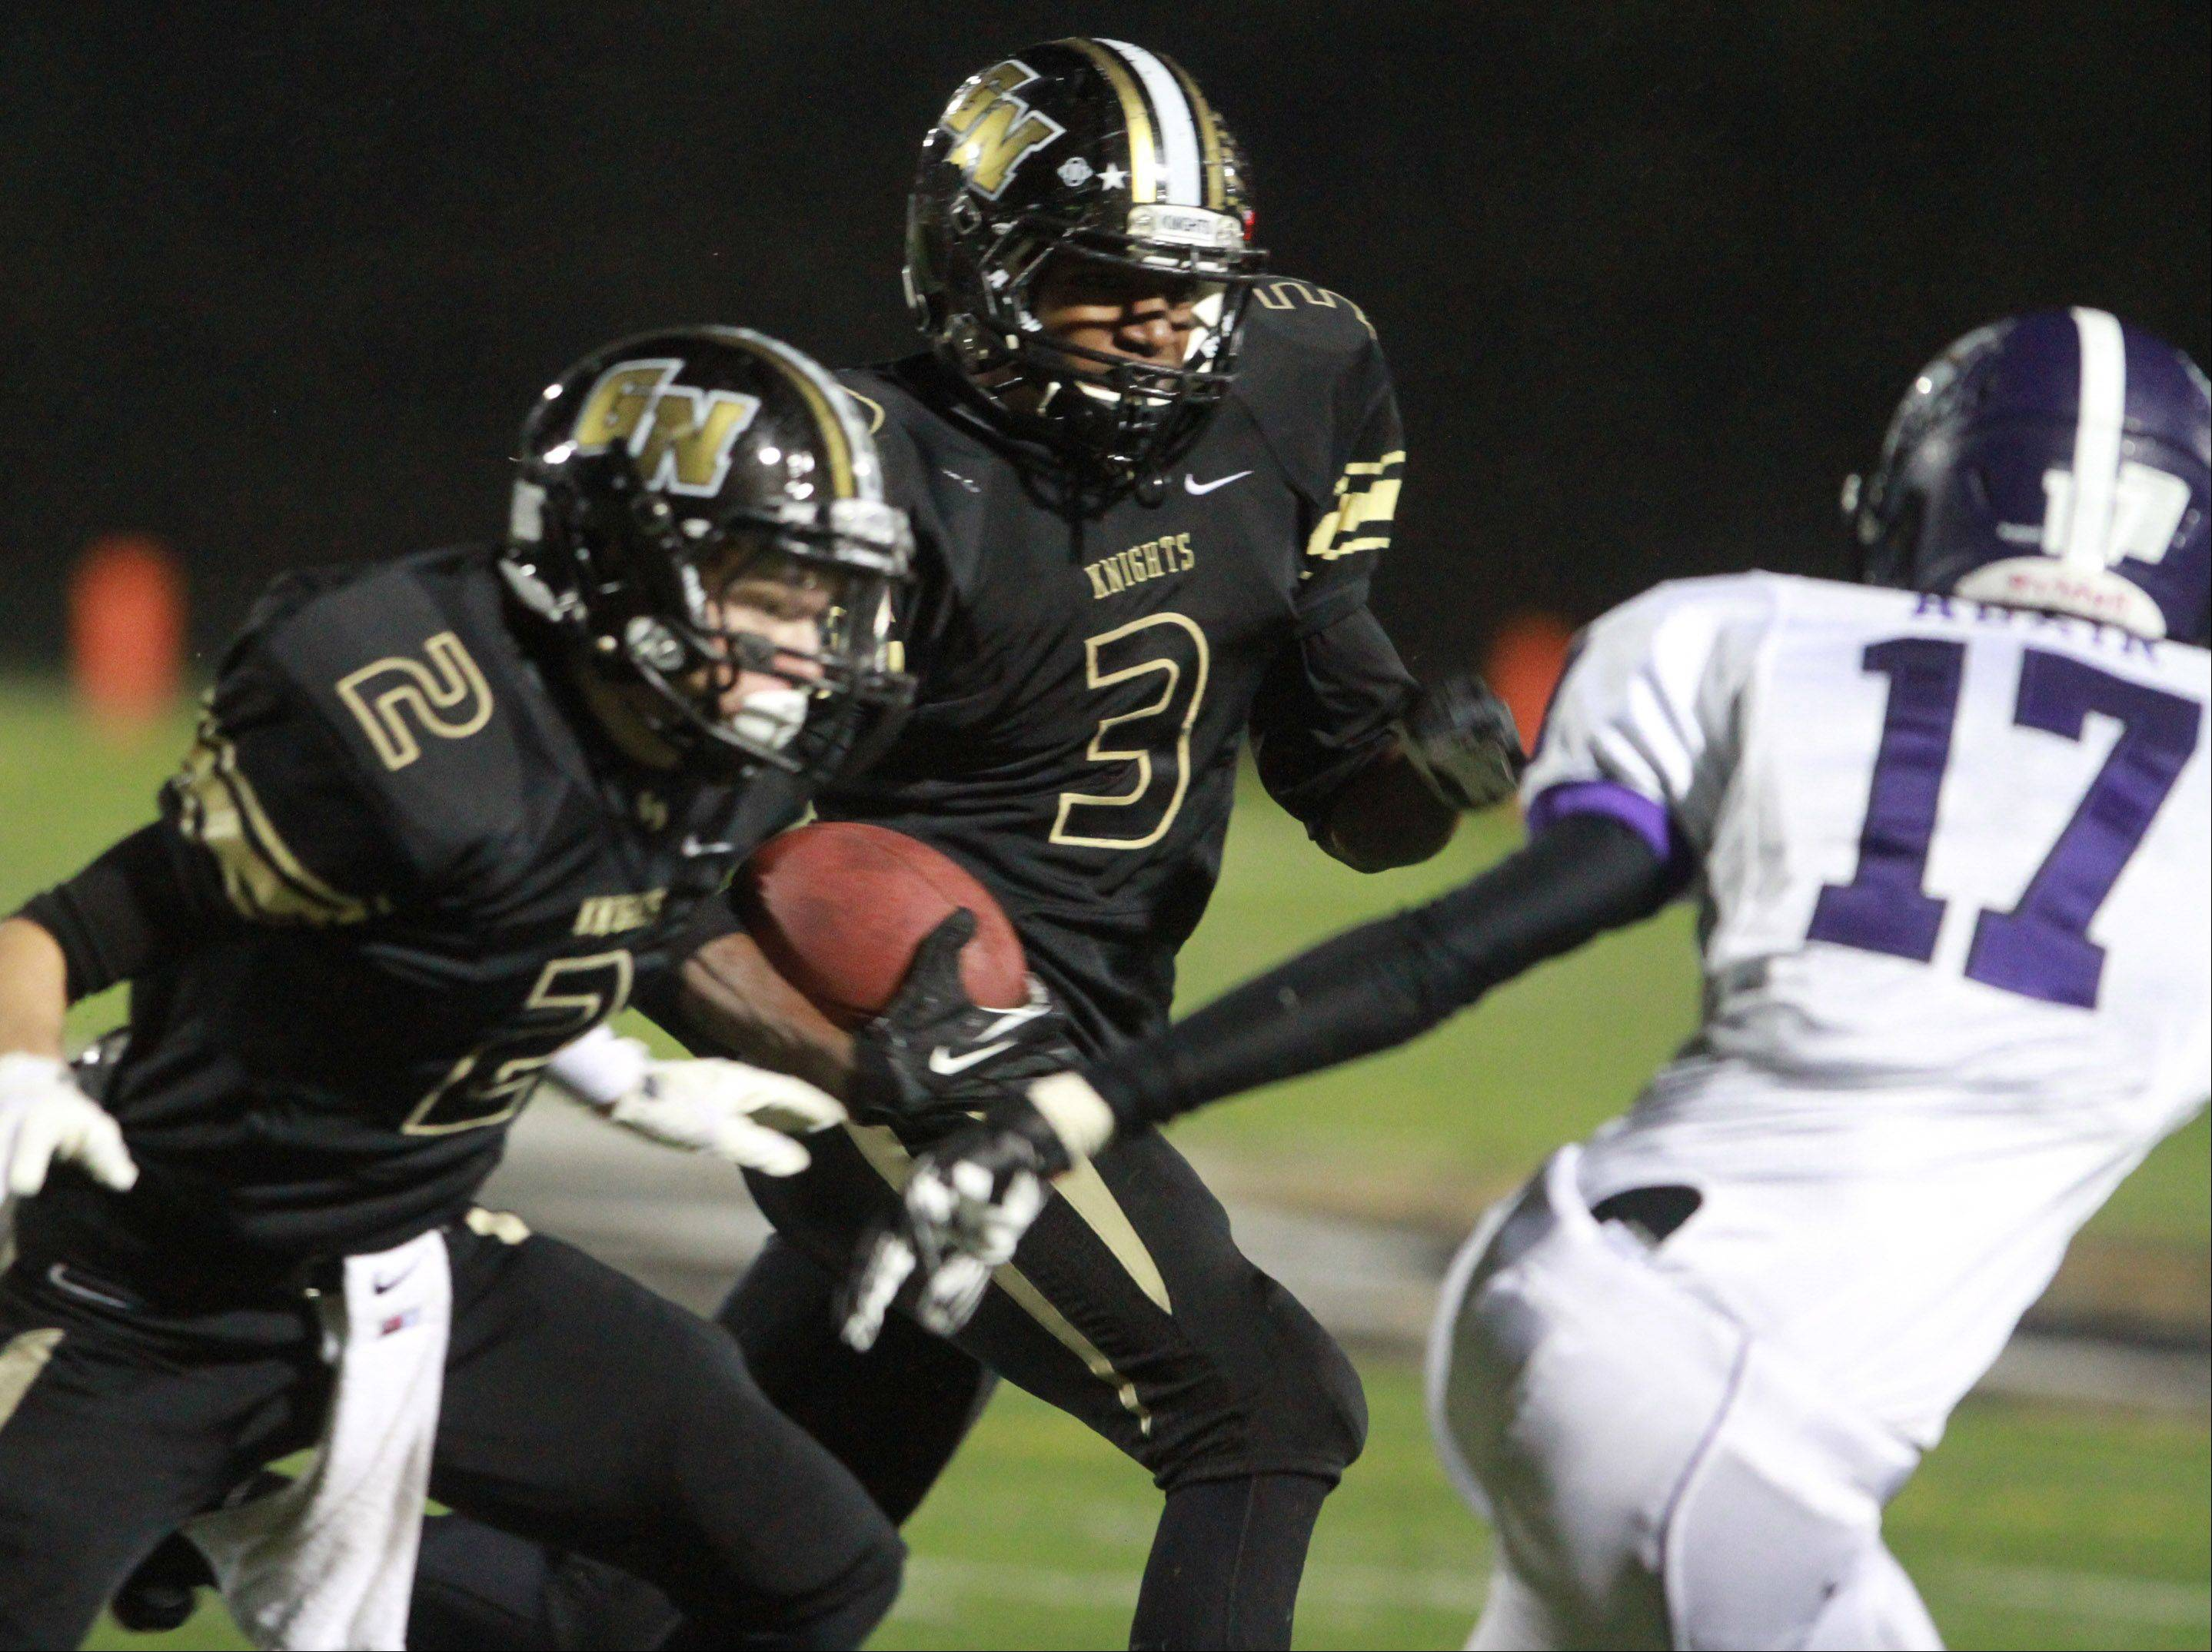 Grayslake North's Titus Booker looks for running room as Dylan Foster (2) looks to block a defender against Rolling Meadows last Friday night.